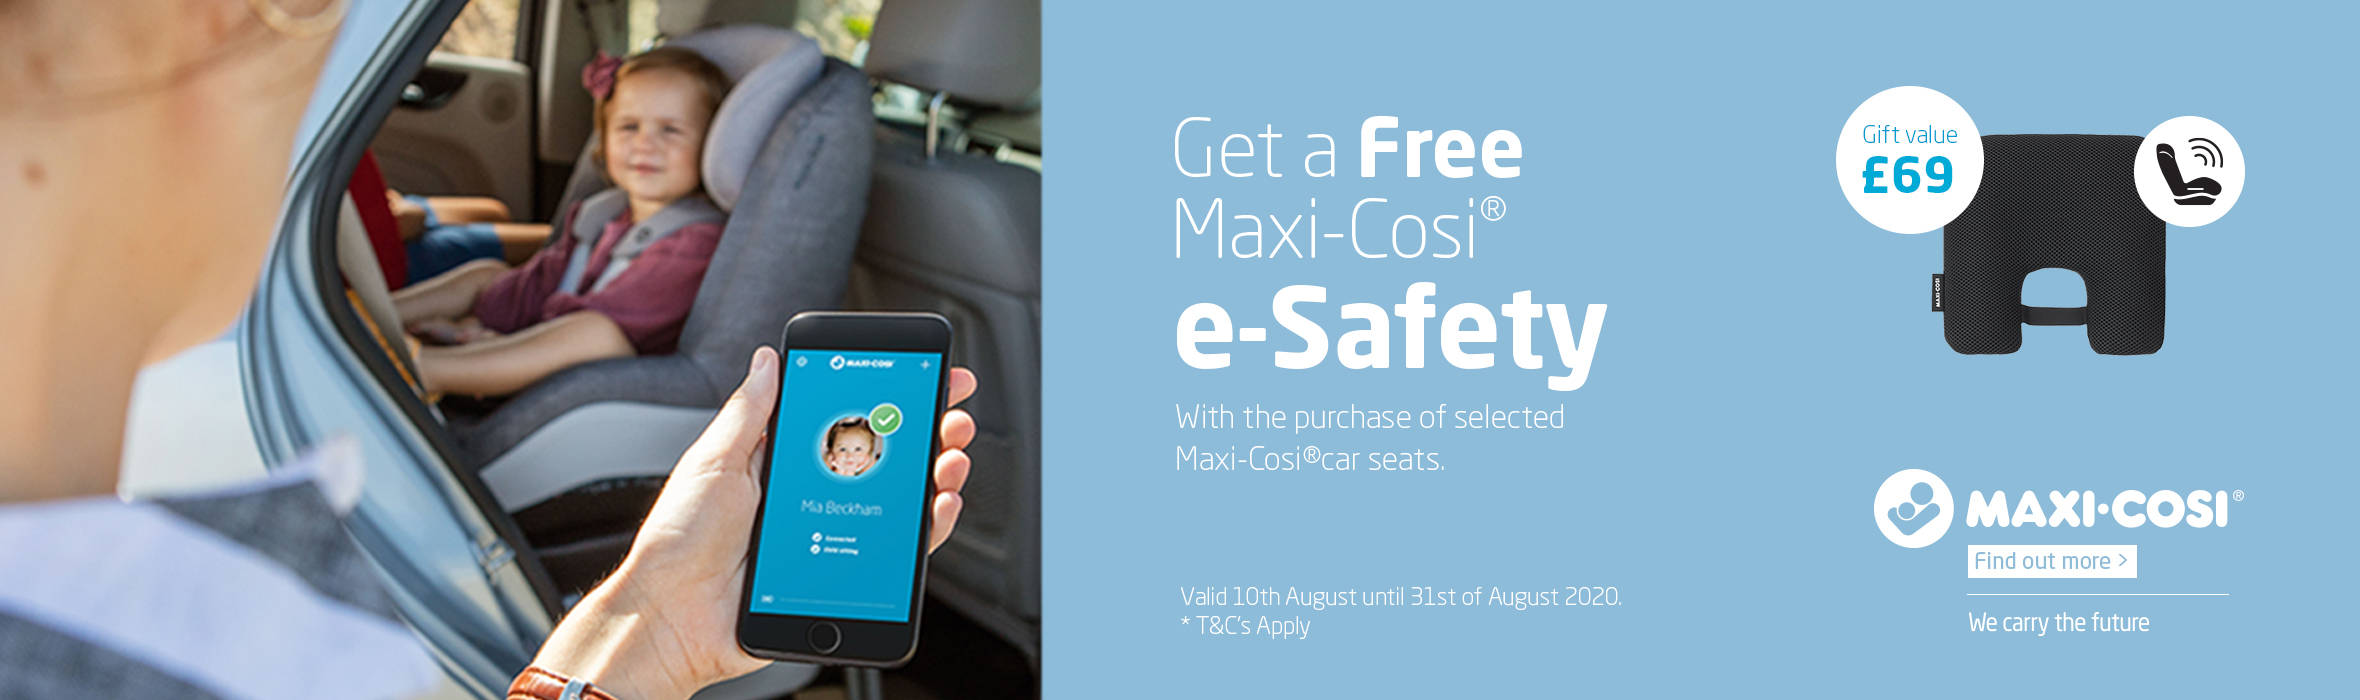 Get a Free Maxi-Cosi e-Safety with the purchase of selected Maxi-Cosi Car Seats